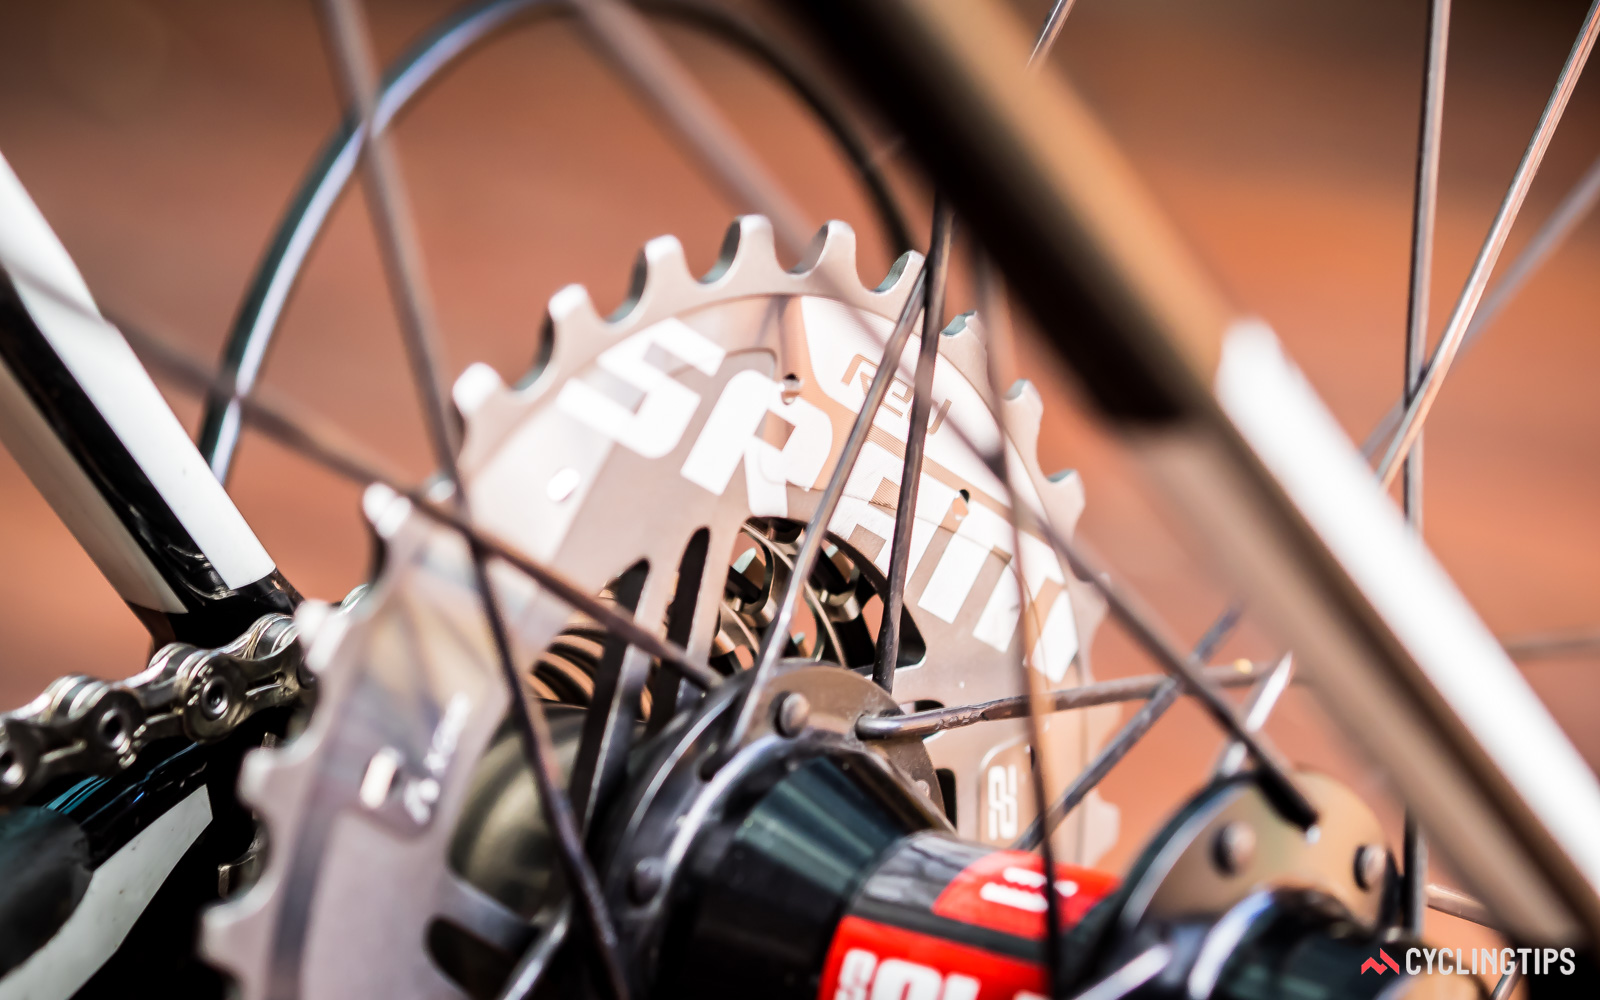 SRAM chains and cassettes are compatible with all of Shimano's road groupsets